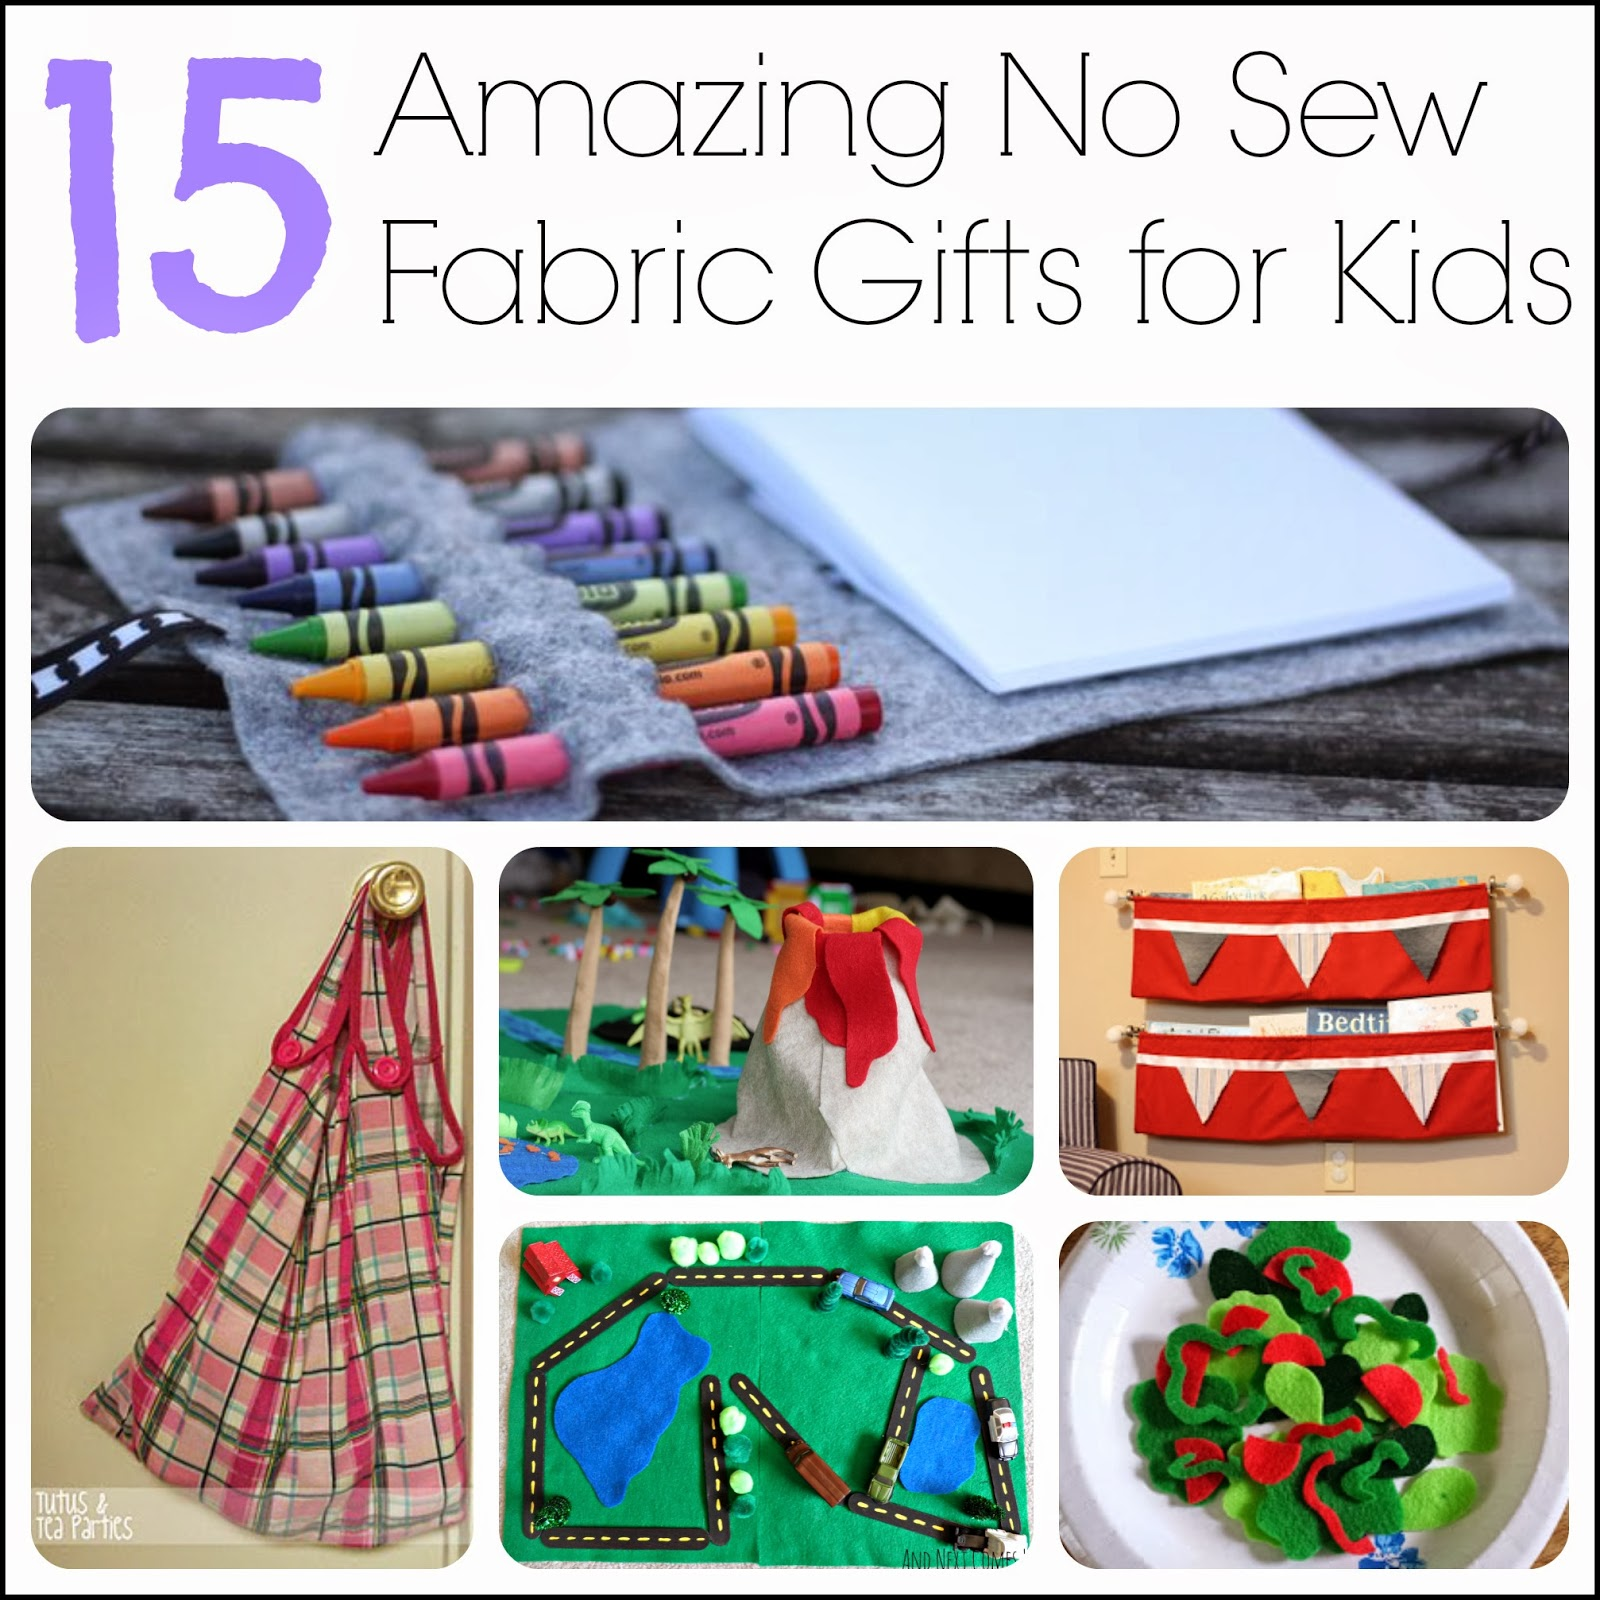 15 Amazing No Sew Fabric Gifts for Kids